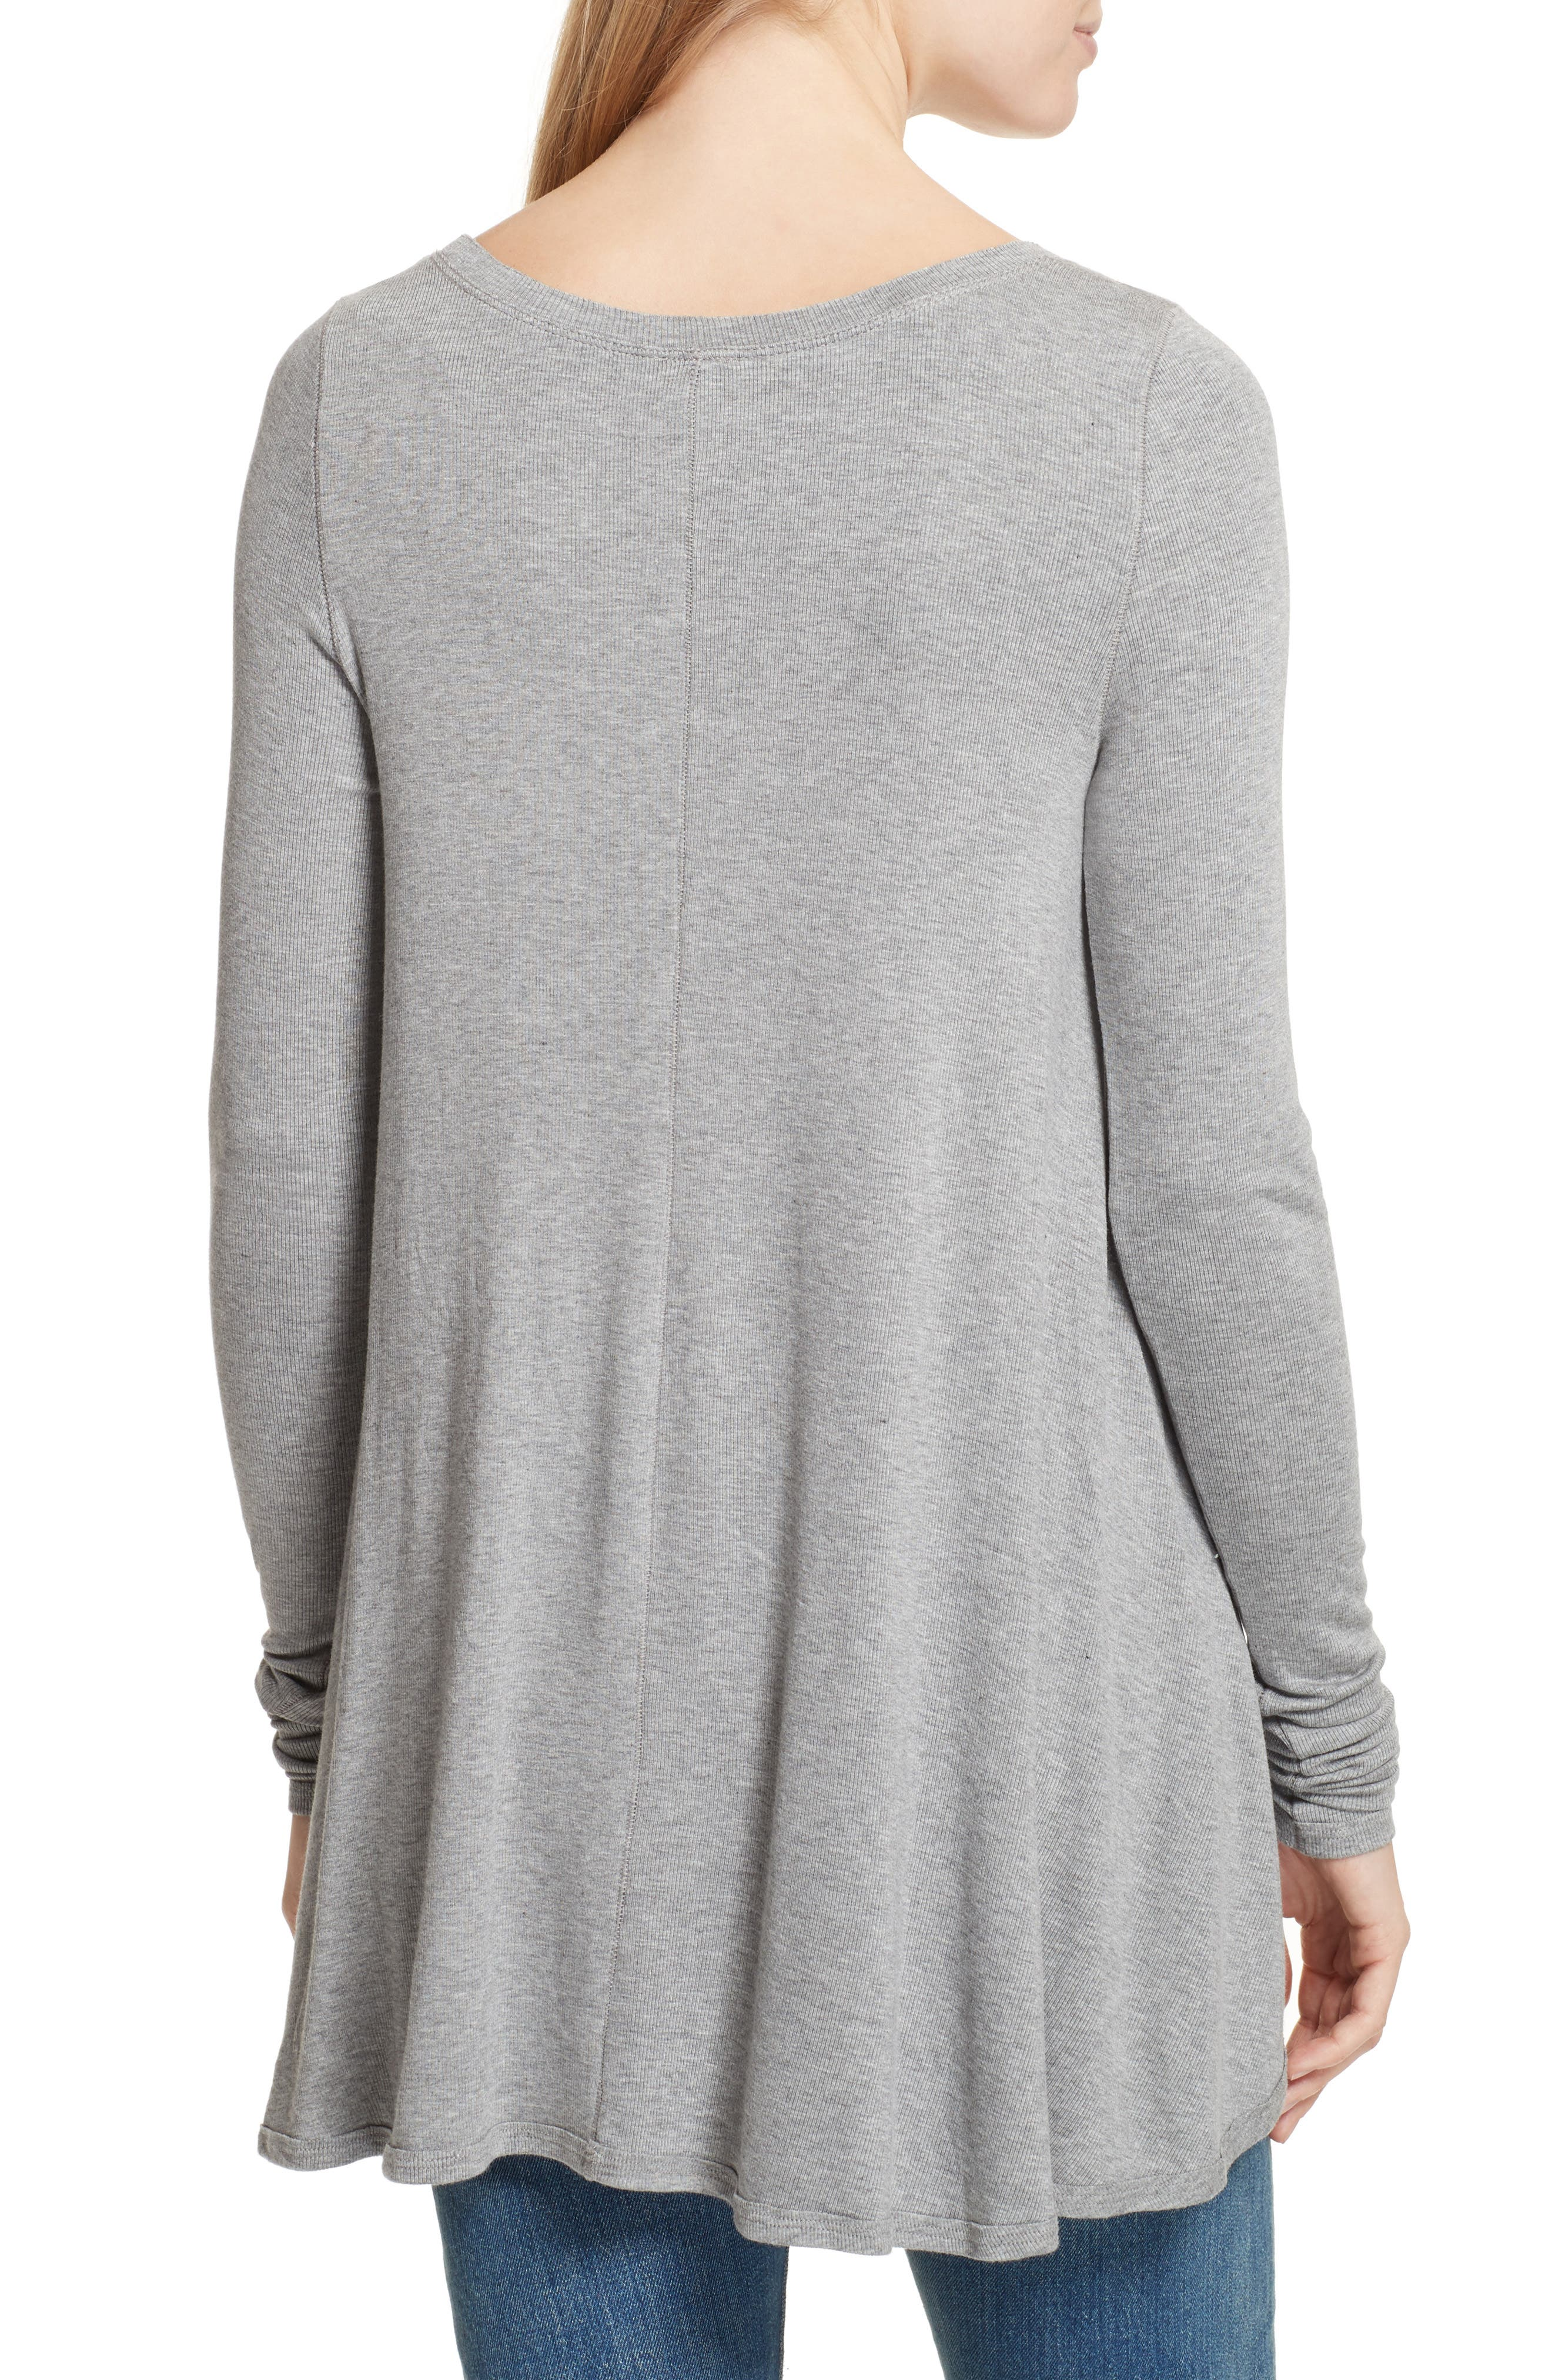 We the Free by Free People January Tee,                             Alternate thumbnail 2, color,                             Grey